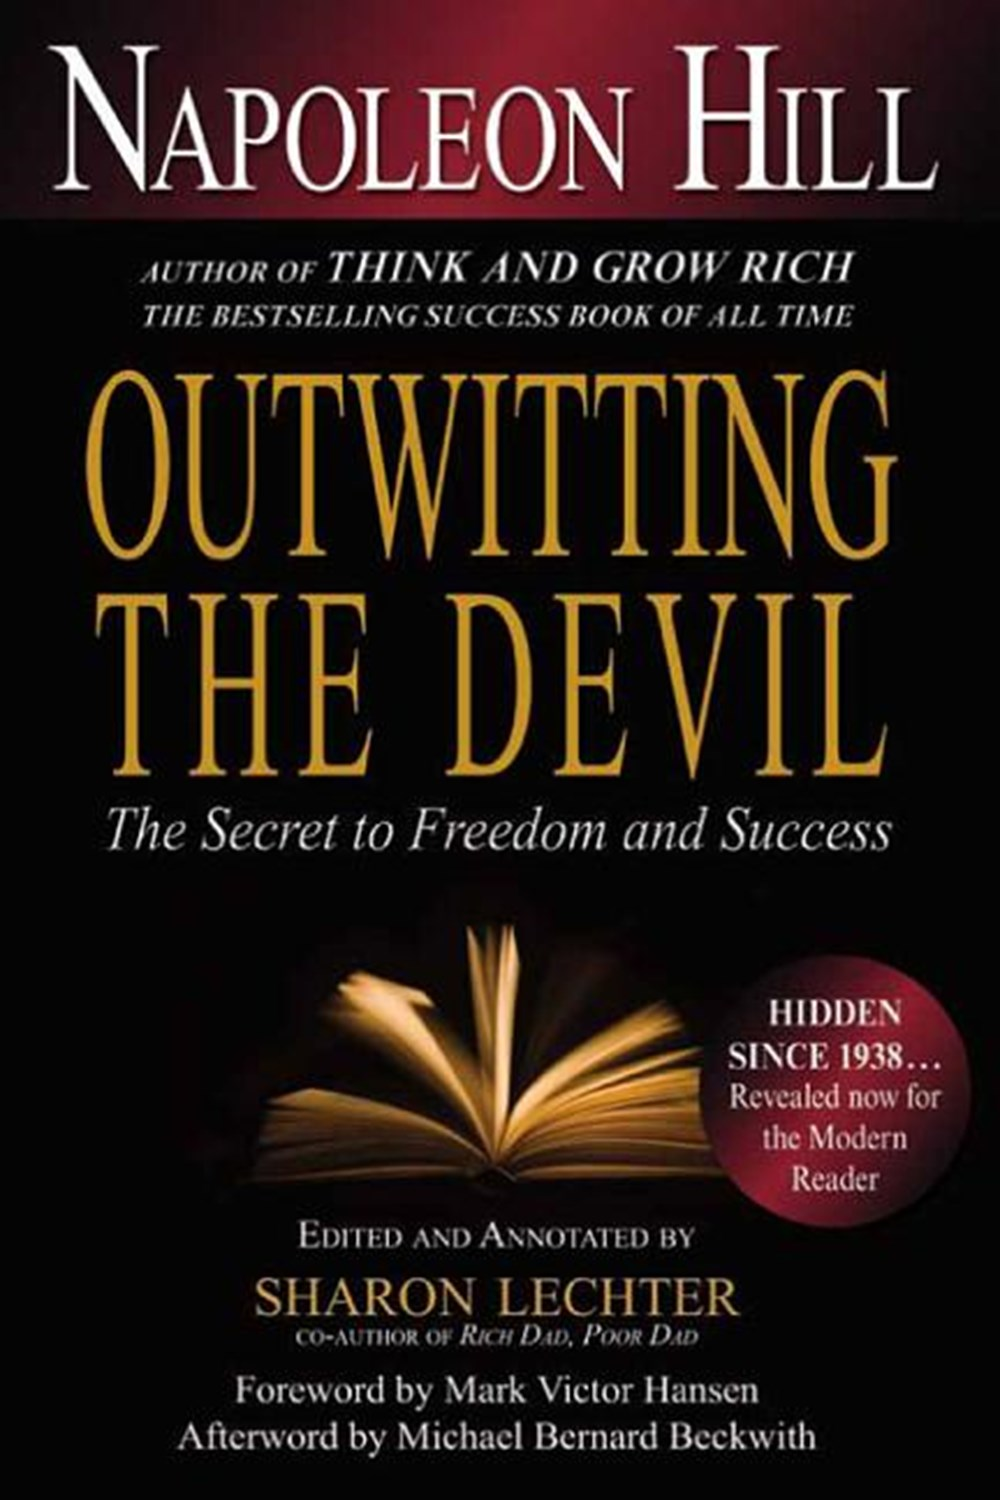 Outwitting the Devil The Secret to Freedom and Success